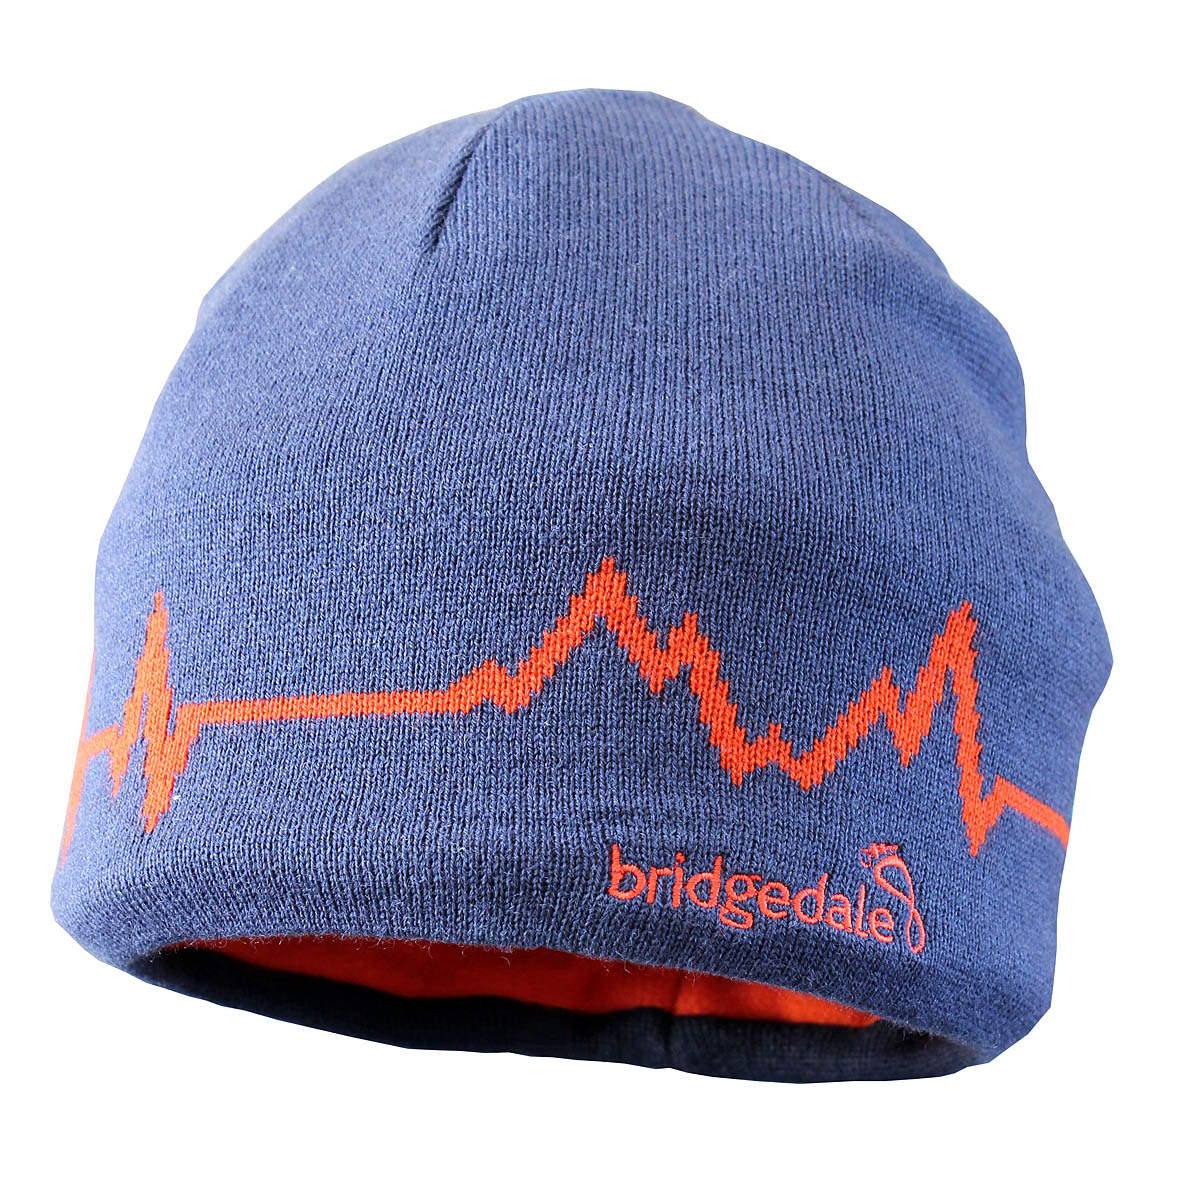 5dbe306c378 grough — Heads up as sock brand Bridgedale adds range of hats to its ...